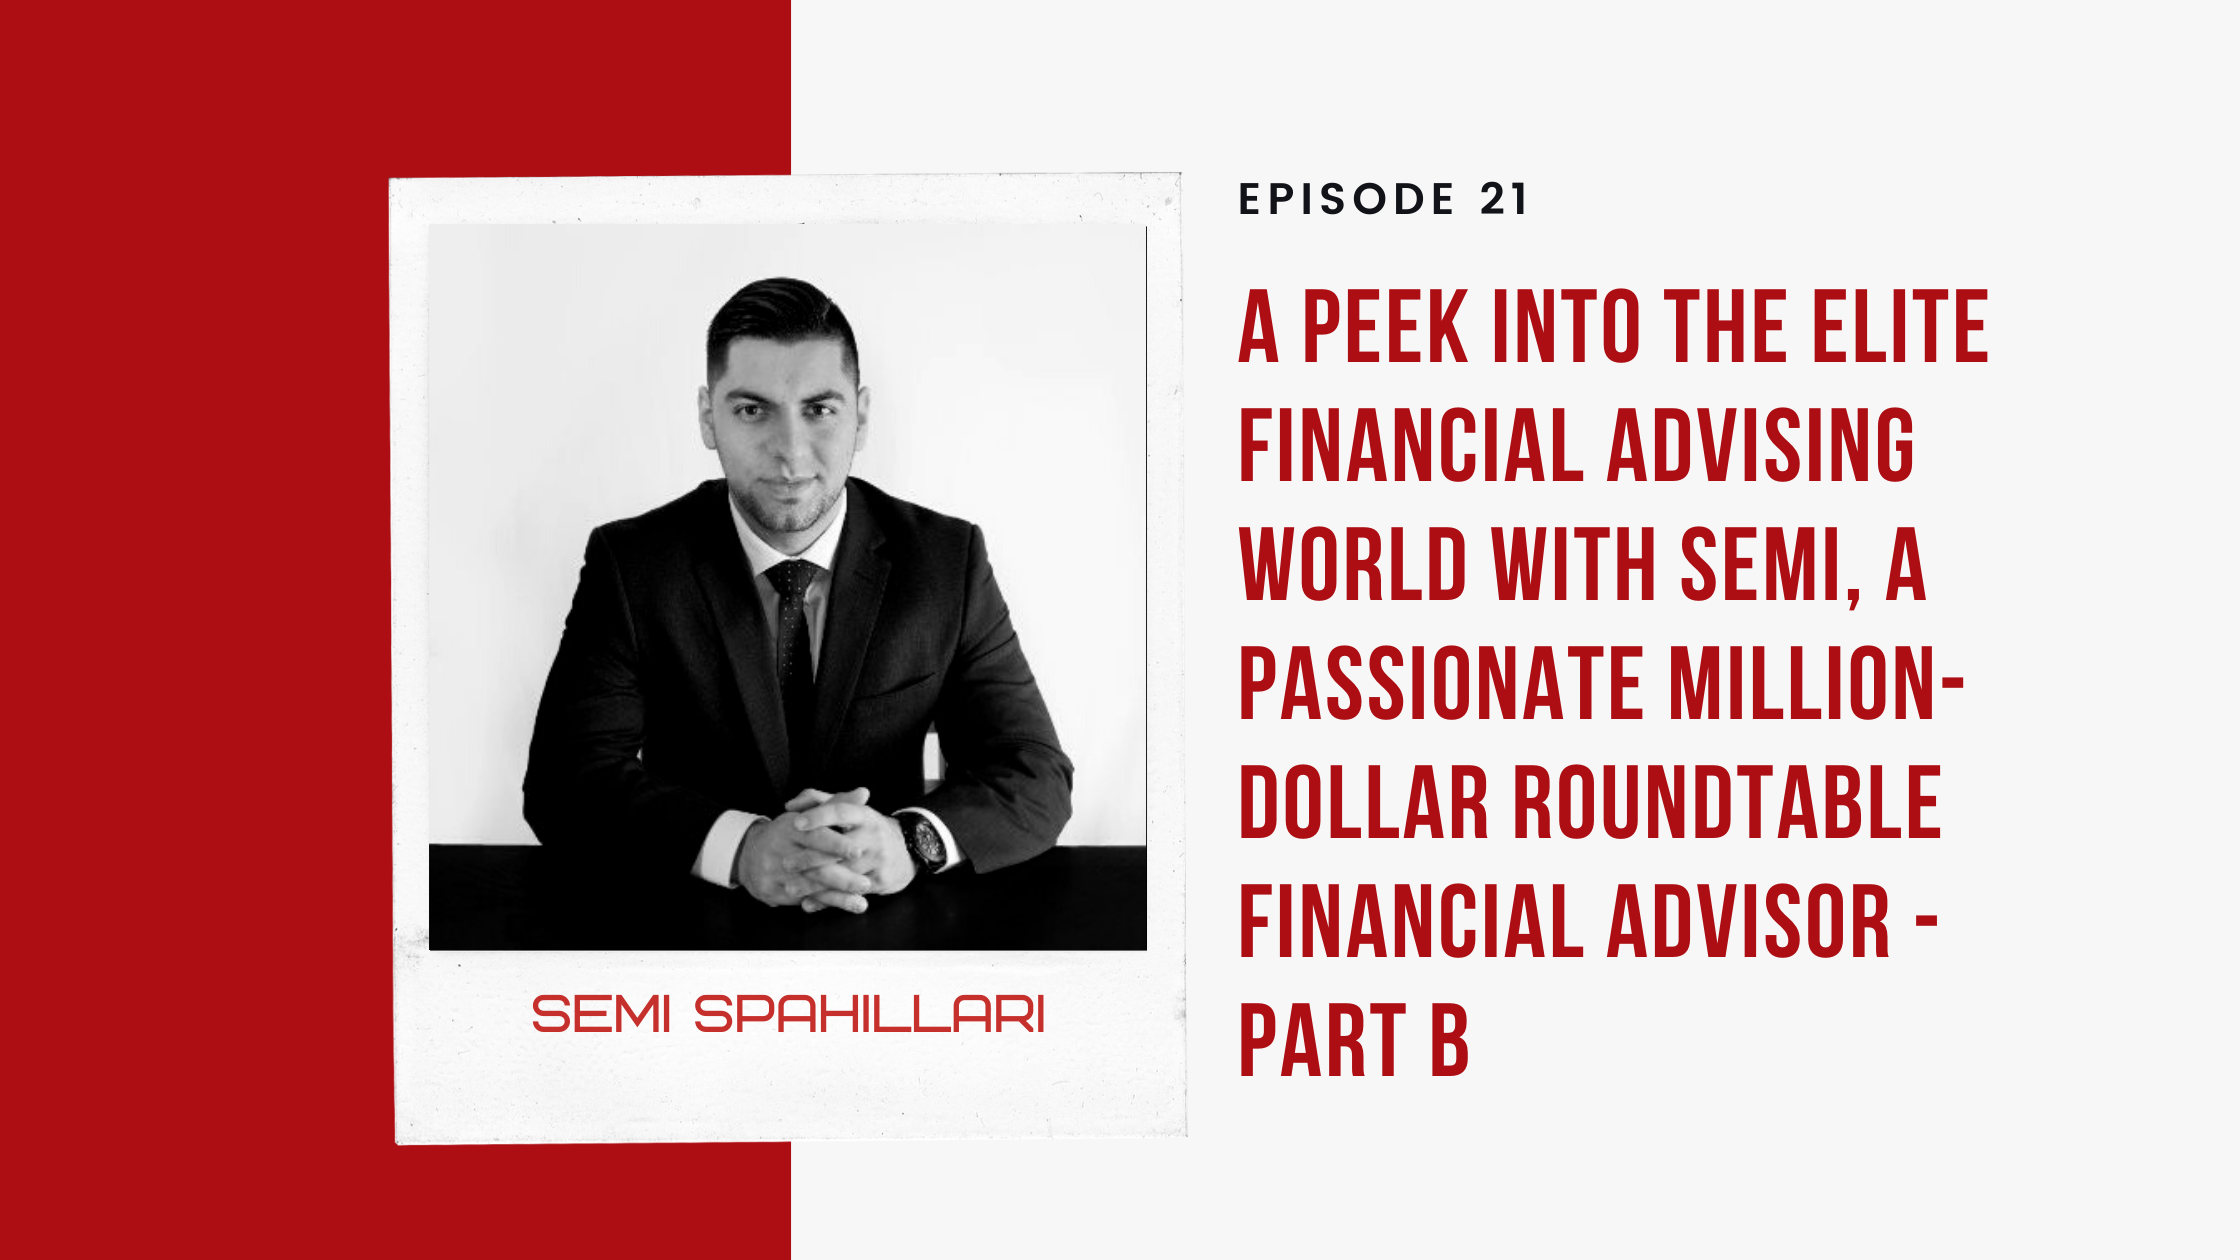 EP 21 - A Peek into the Elite Financial Advising World with Semi, a Passionate Million-Dollar Roundtable Financial Advisor - Part B